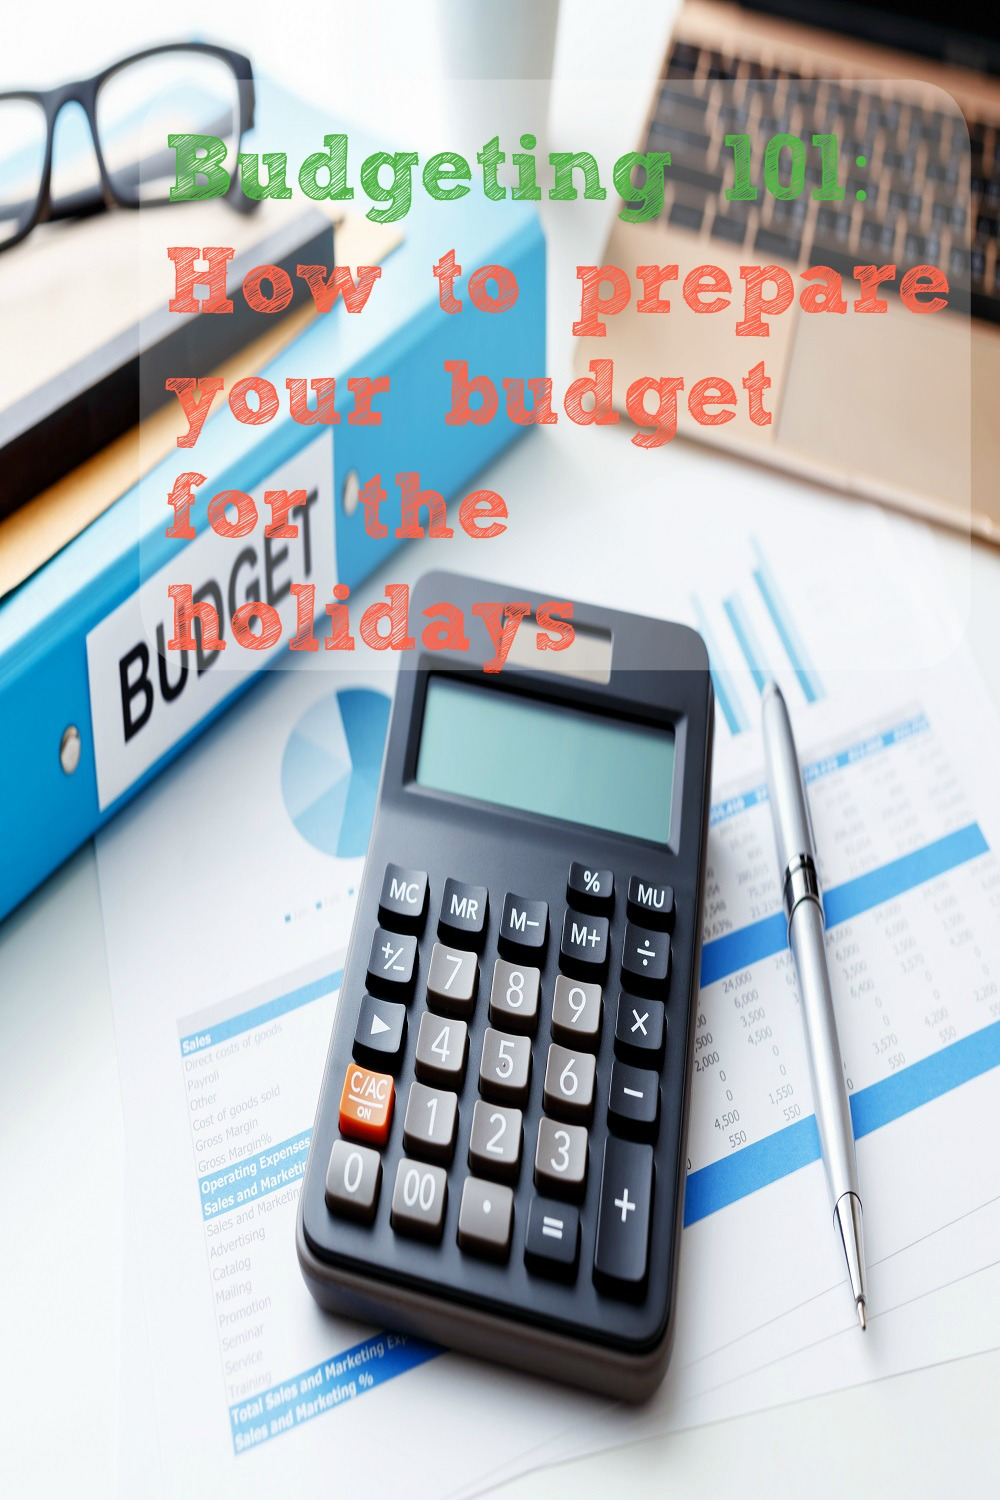 Budgeting 101: How To Prepare Your Budget For The Holidays